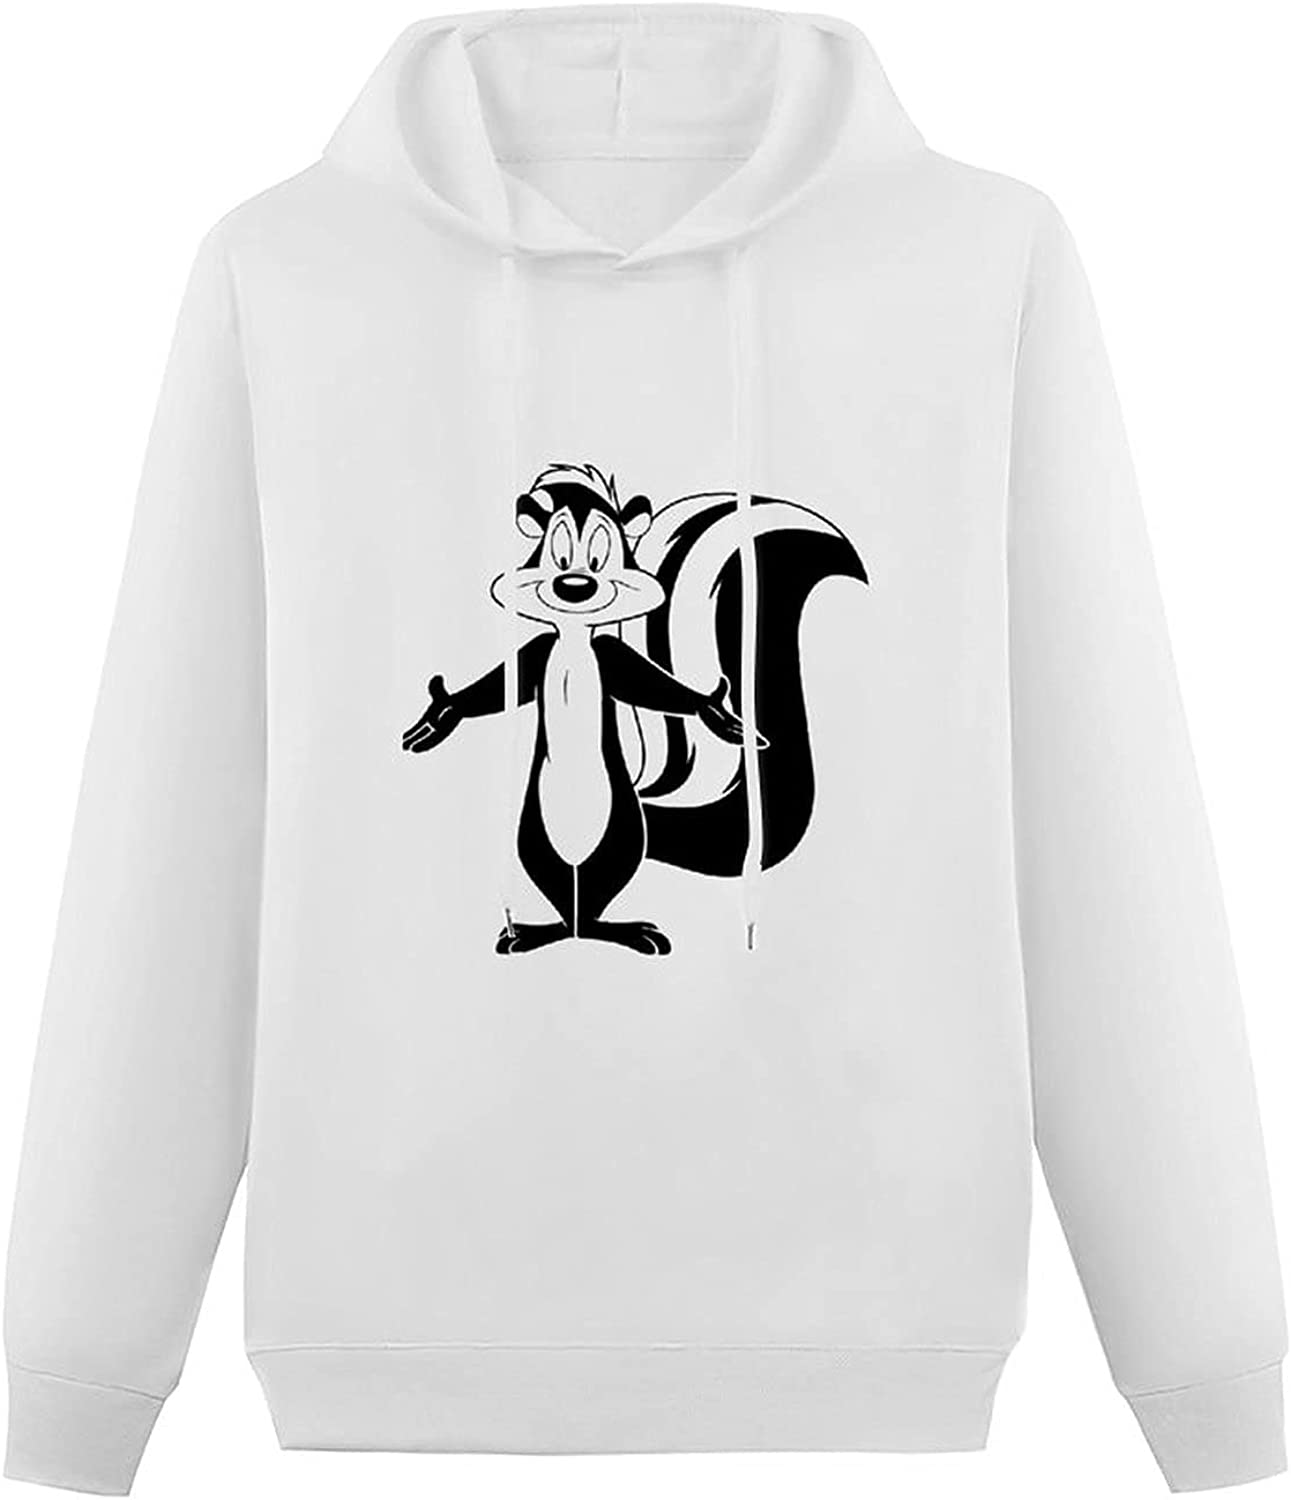 Pe-pe Le Pew Classic Teenager Austin Mall Comfortable Swe Pure Long Beach Mall Cotton Hooded